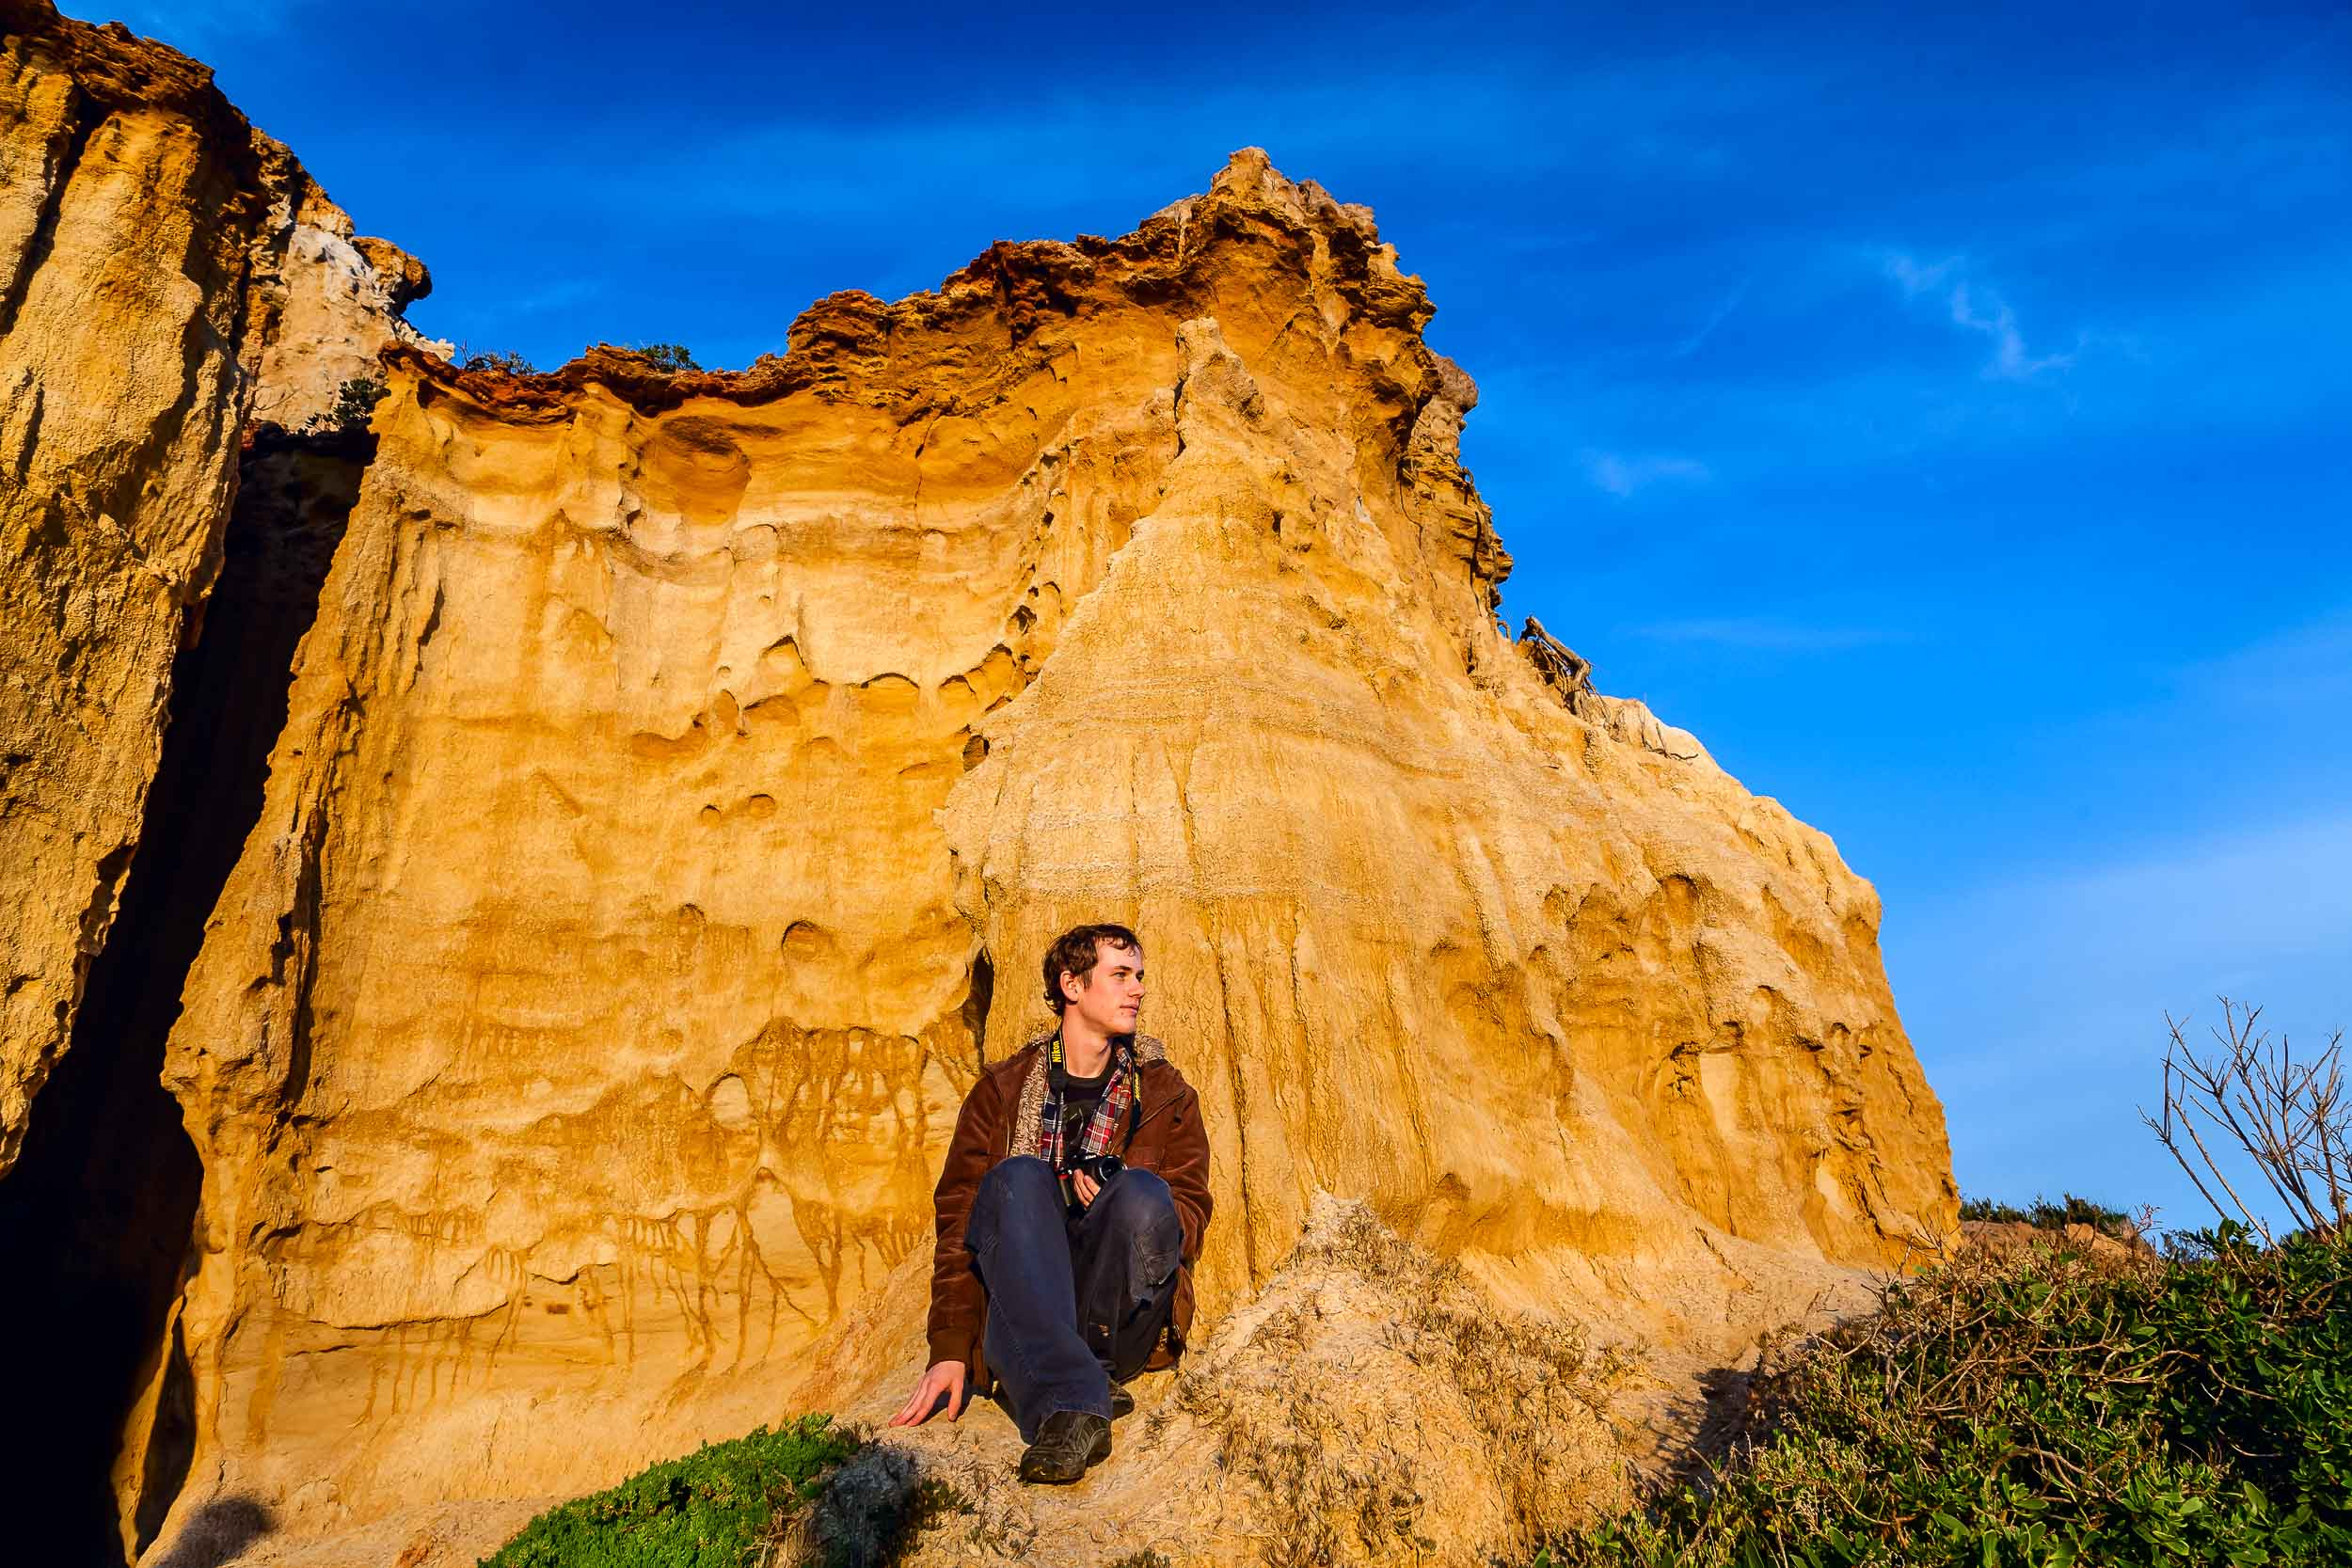 A young man looks out towards    Half Moon Bay    from the cliffs above the beach.